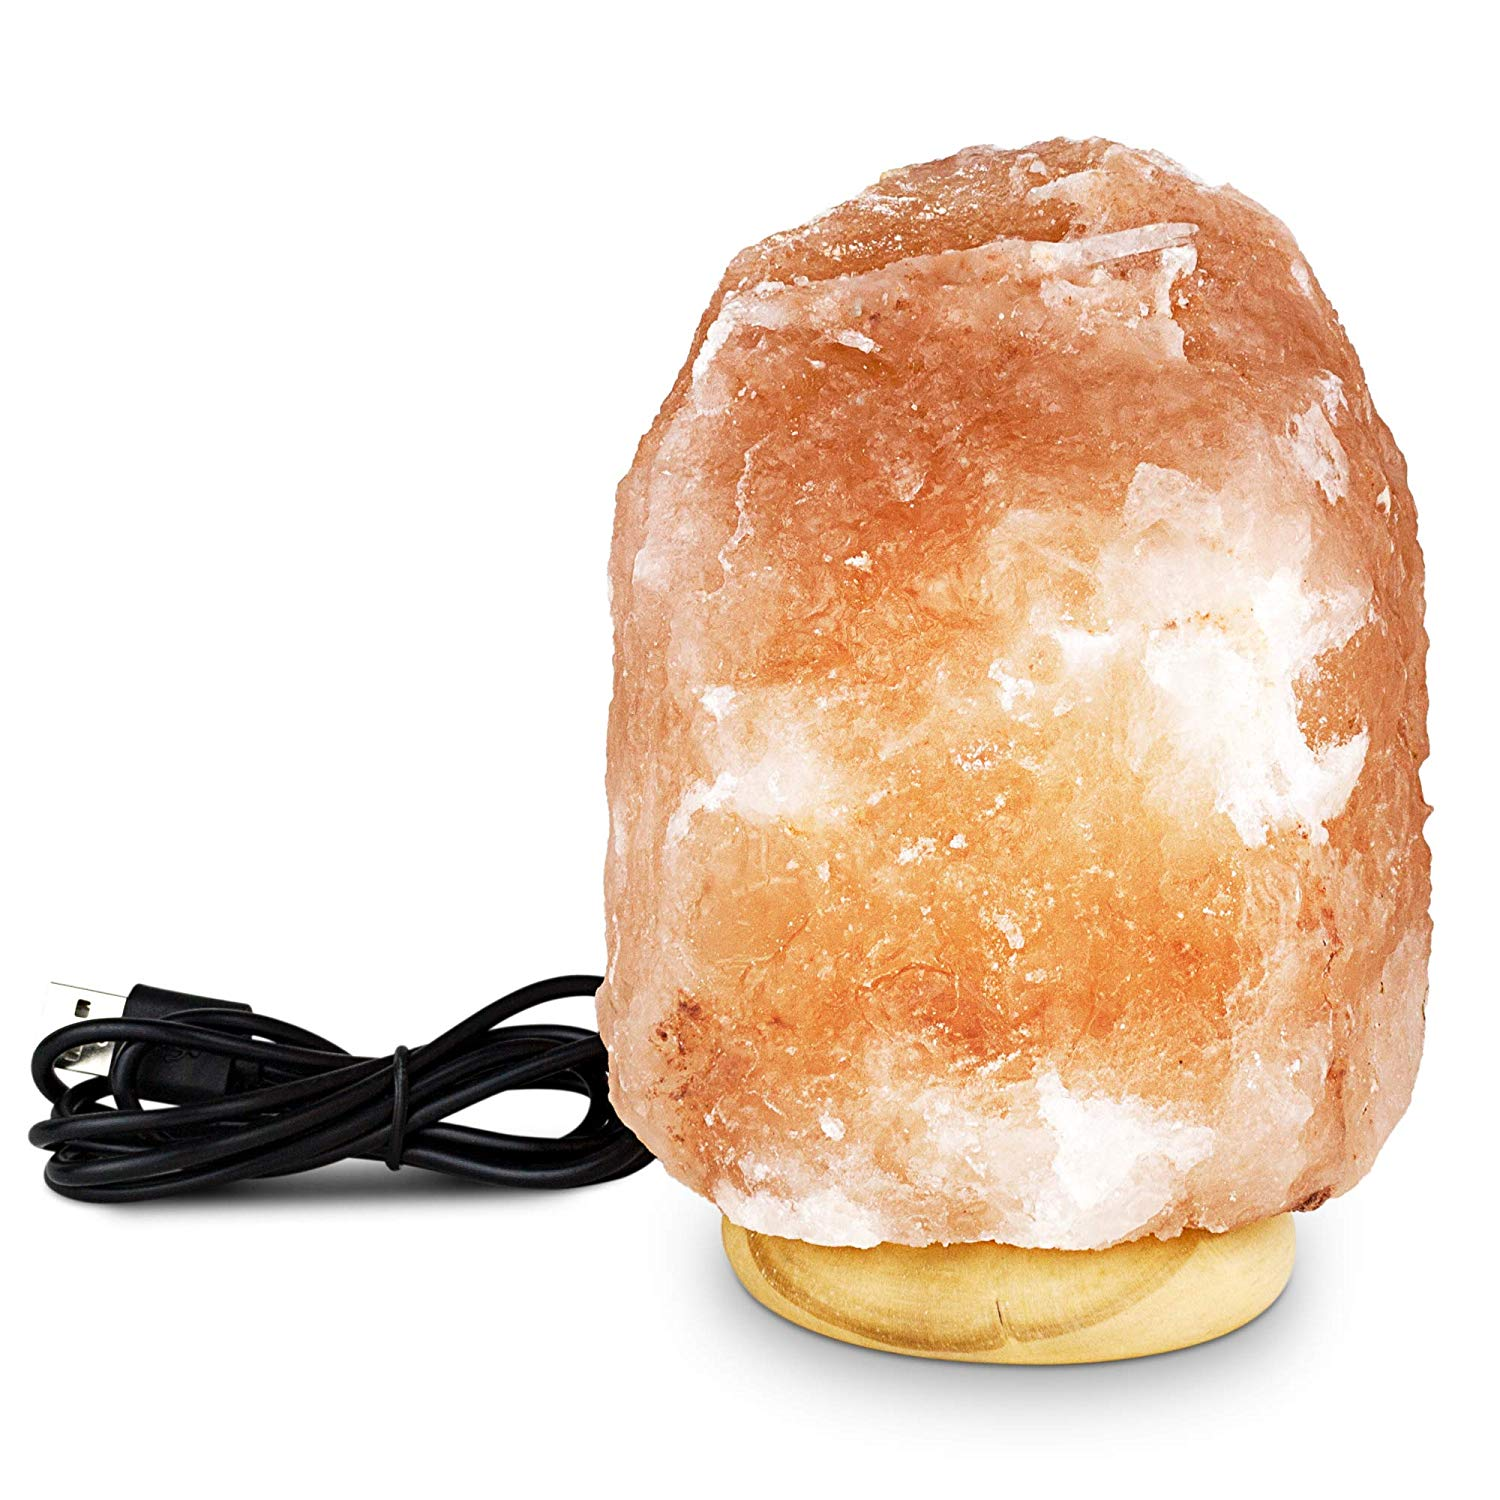 TULA Himalayan Salt Crystal Lamp, Beautiful Color Changing LED, Relaxing and Ambient Décor Accent for the Home/Office, Anti-Microbial, Real Natural Salt, Wood Base with USB